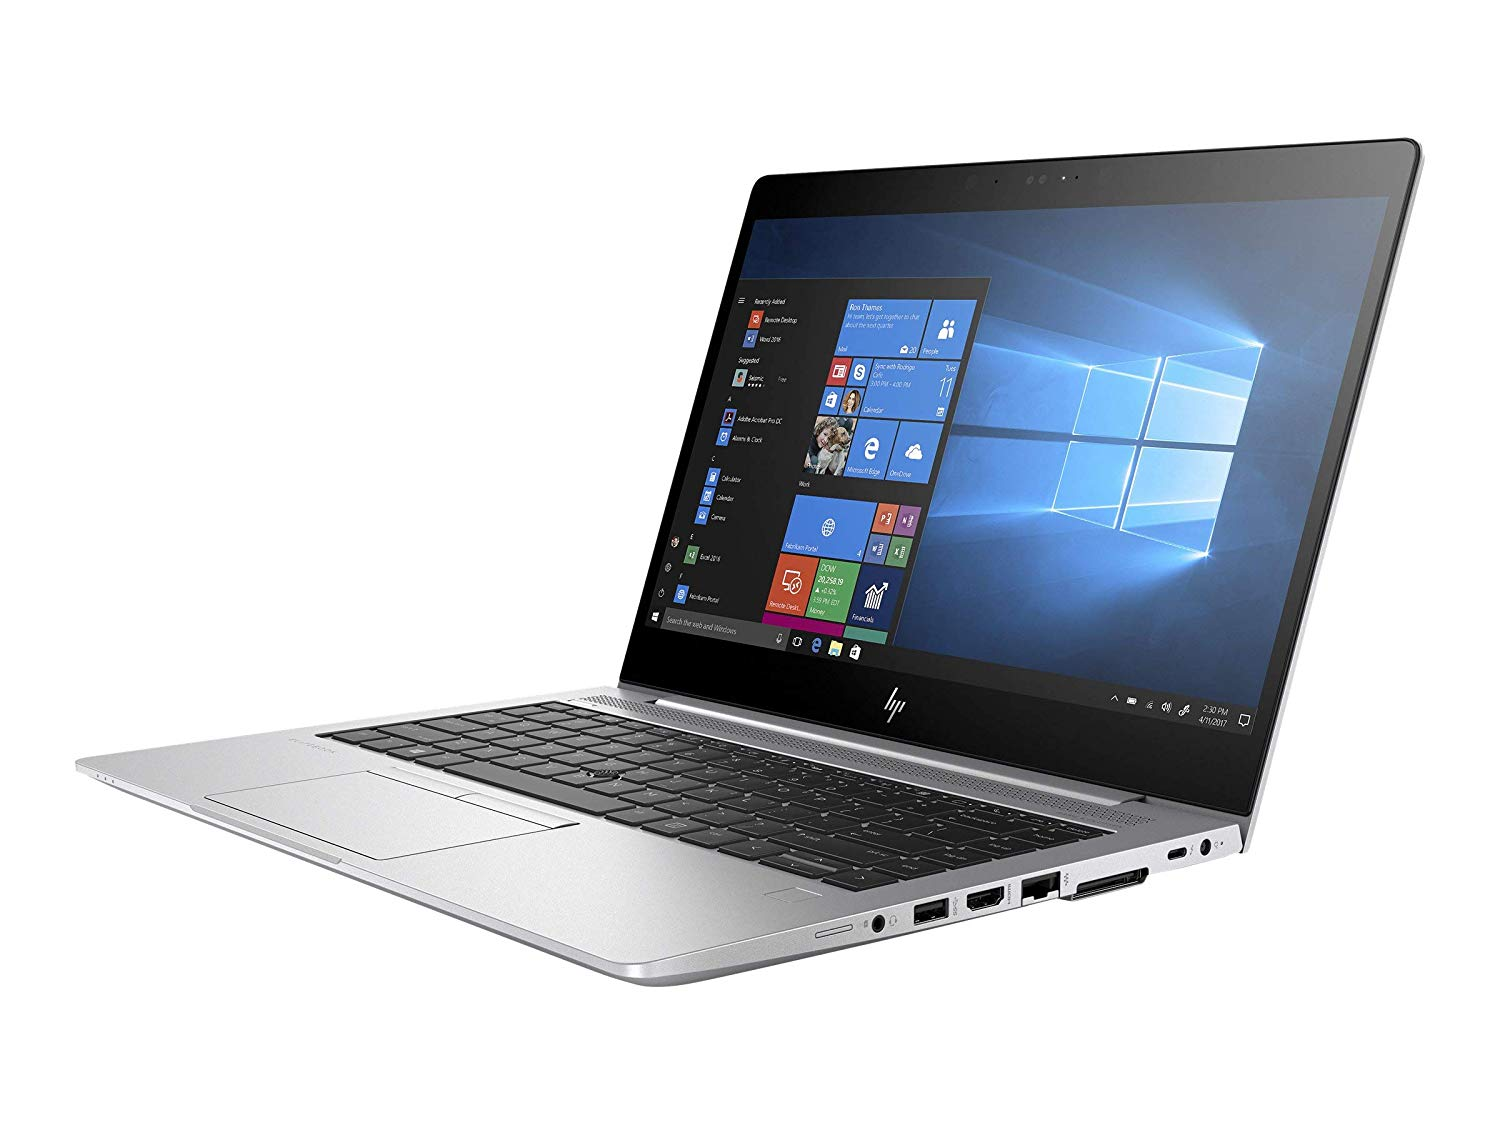 "HP Elitebook x360 1030 G3 13.3"" Touchscreen Laptop 8th Gen Core i7 1.9Ghz 8GB 256GB Windows 10 Refurbished"